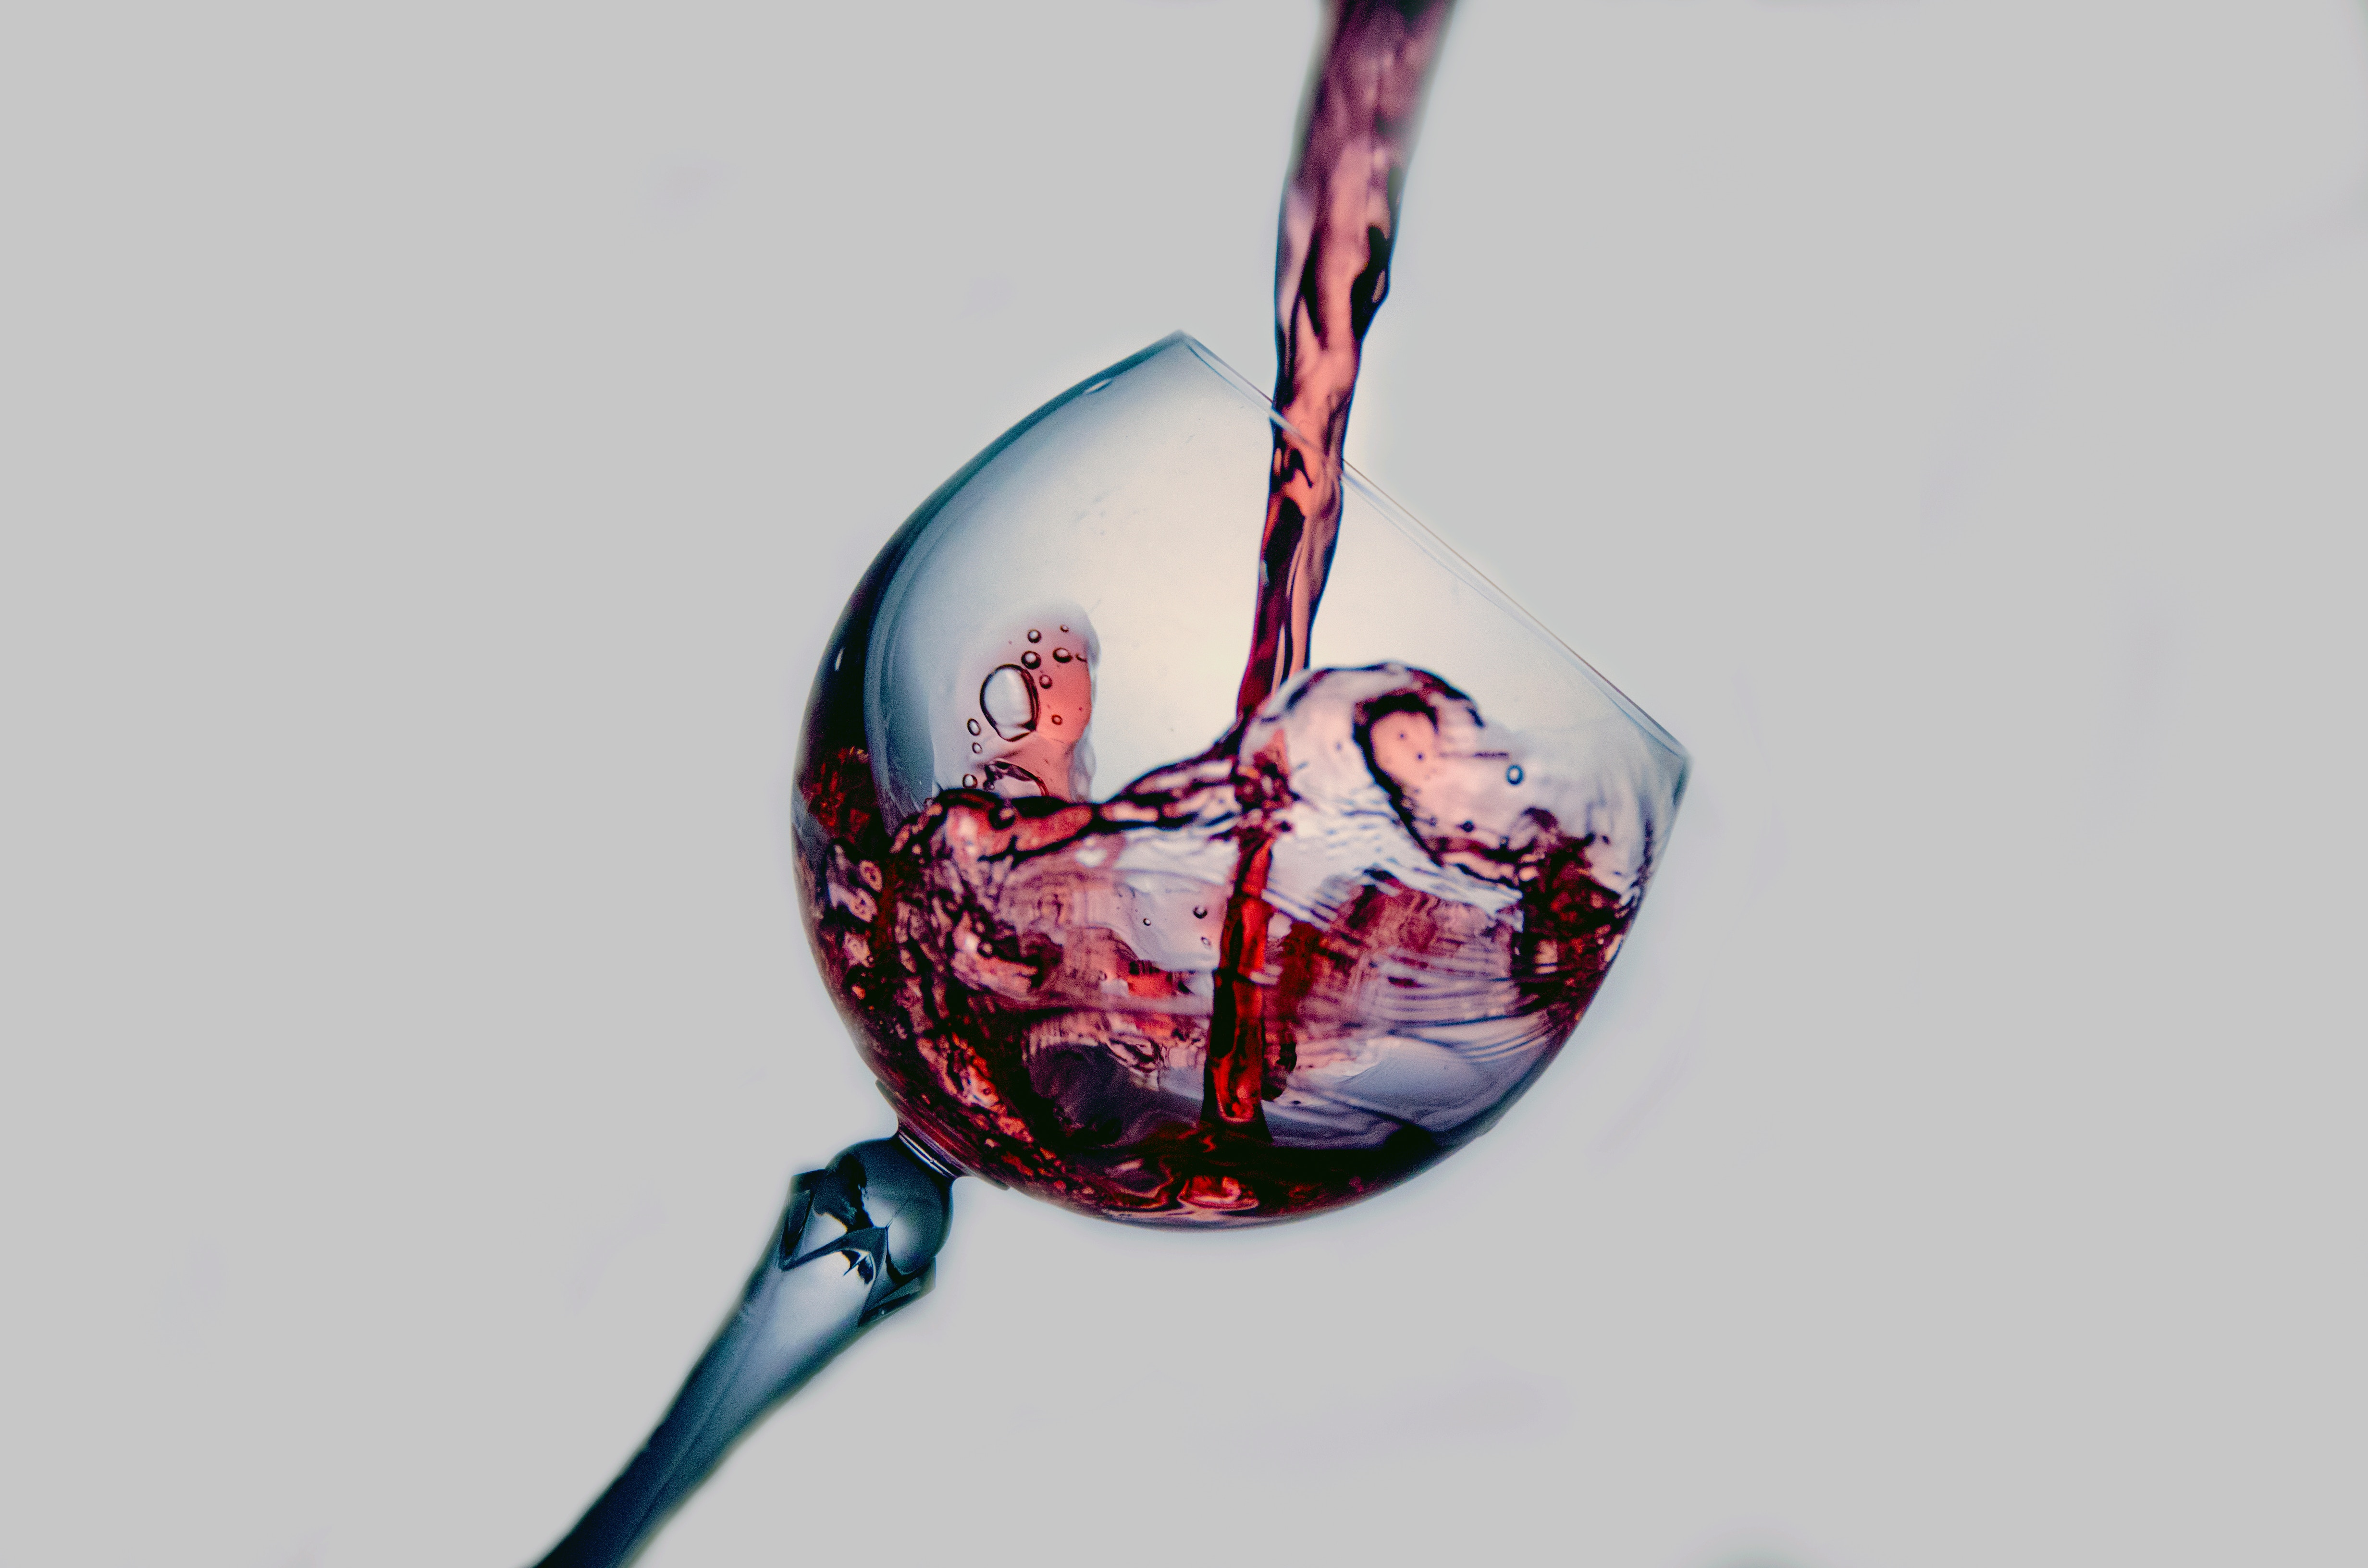 Wine pouring into clear glass